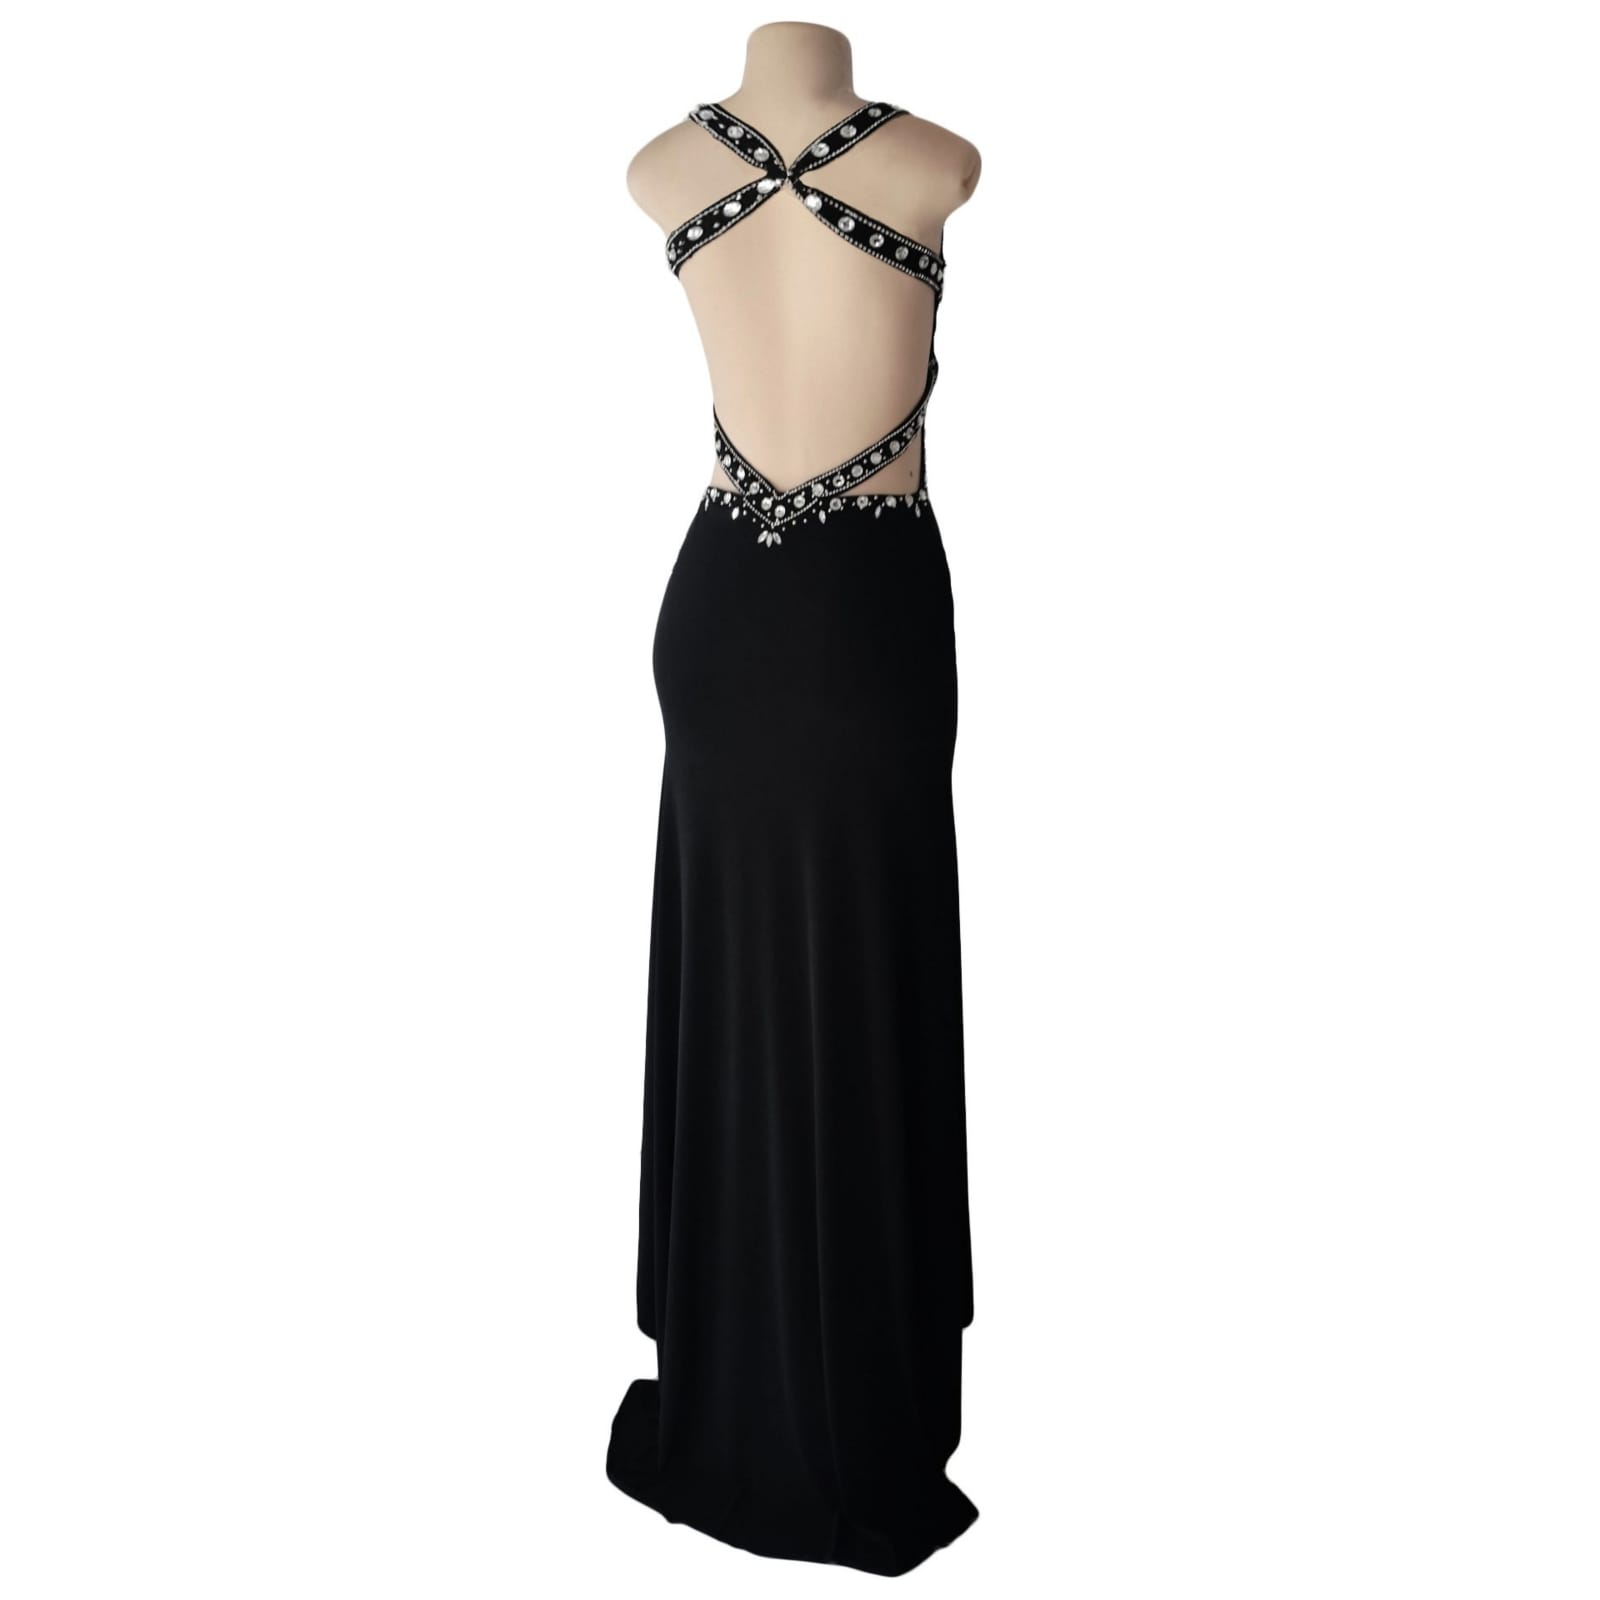 Black and silver prom dress with a low open back 5 black & silver prom dress with a low open back, a slit and train. Slightly open on the side of the tummy. Back straps and bodice detailed with silver beads and diamante